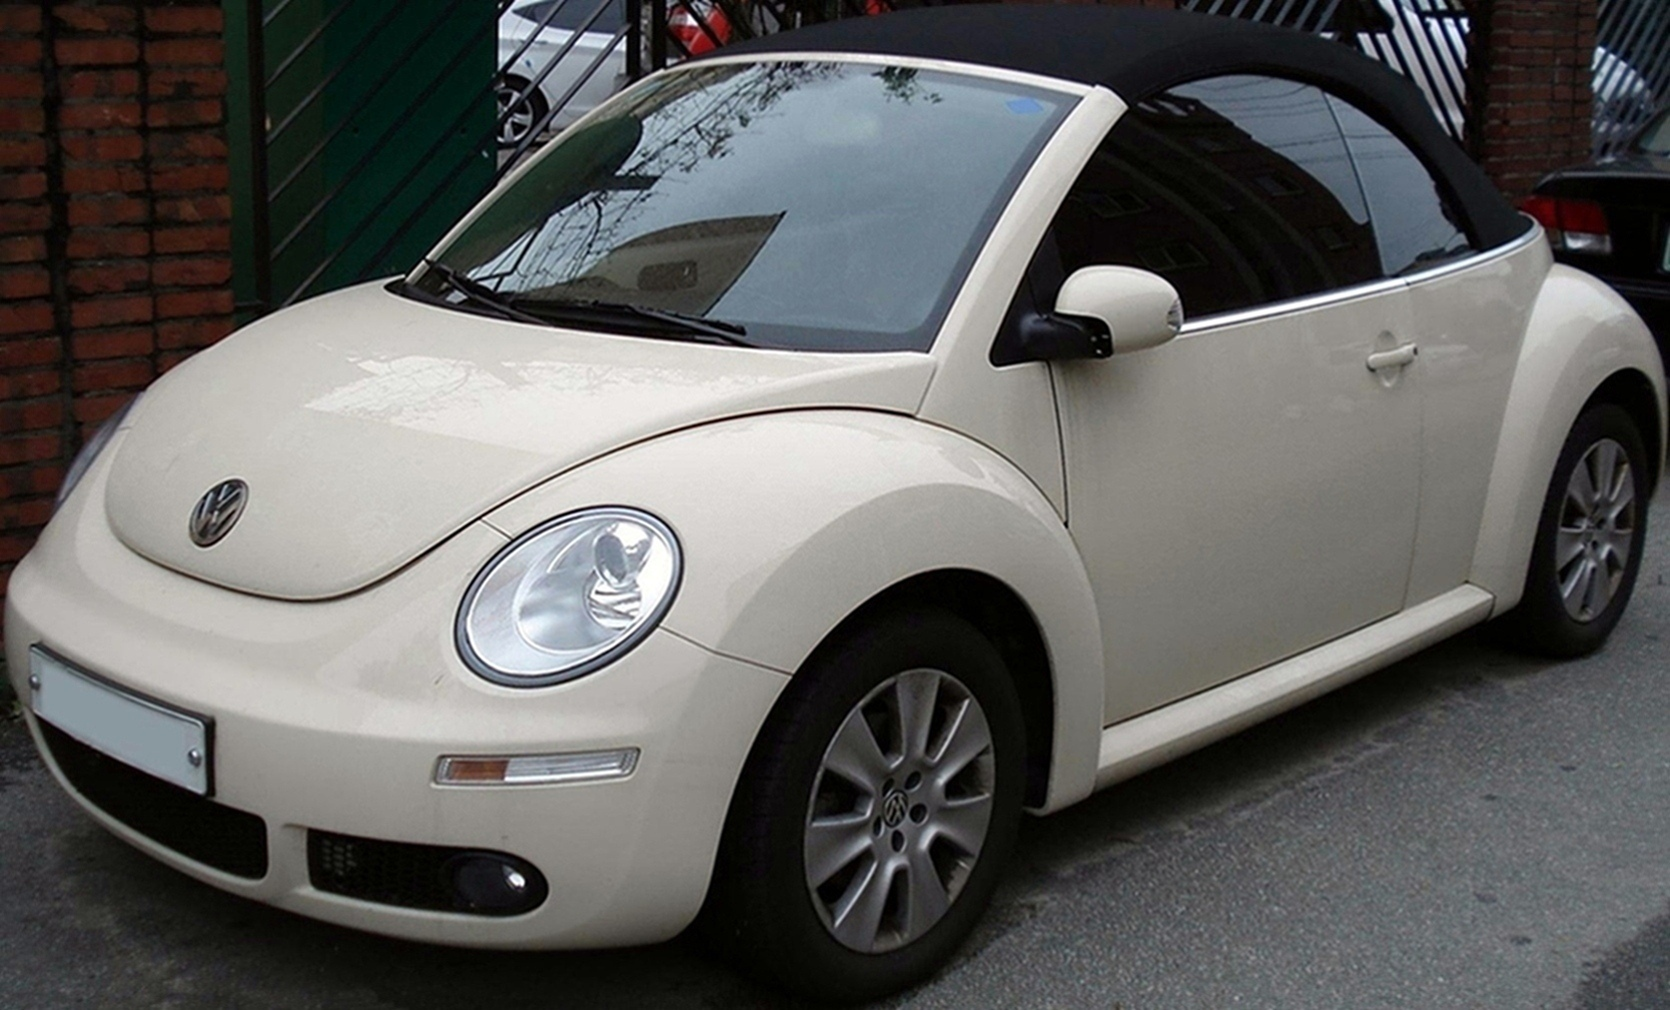 file 20100922 volkswagen new beetle cabriolet. Black Bedroom Furniture Sets. Home Design Ideas